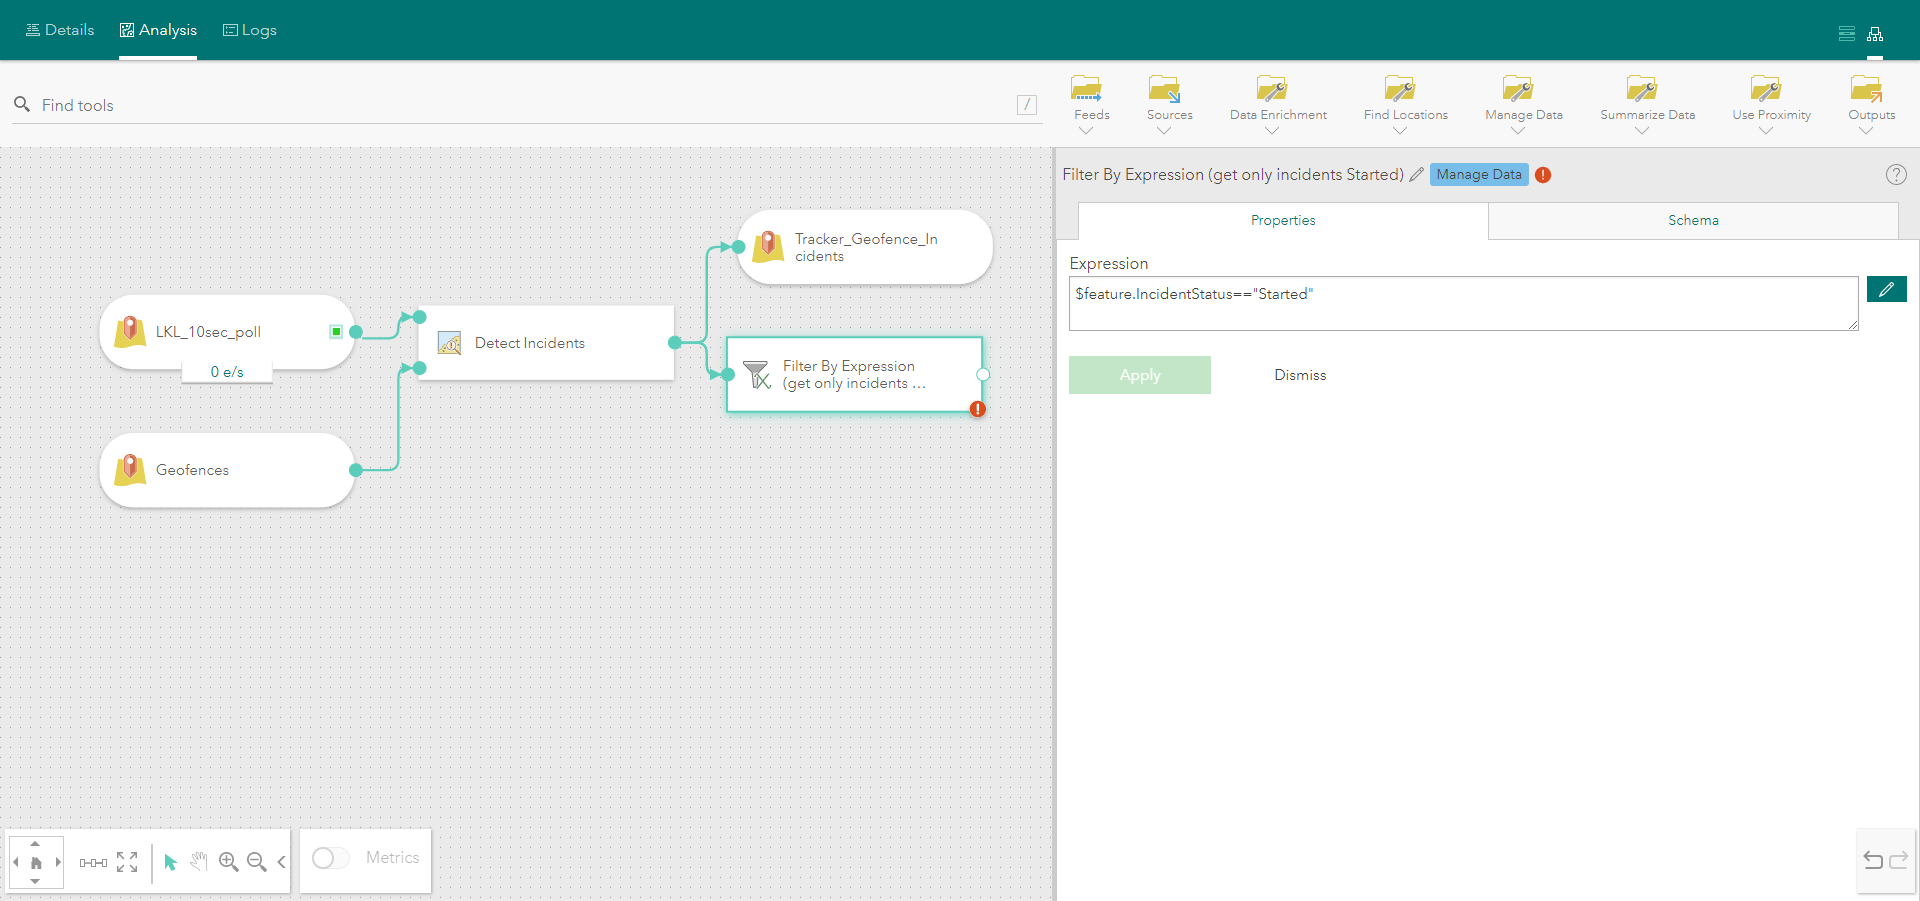 Filter by Attribute Tool Parameters